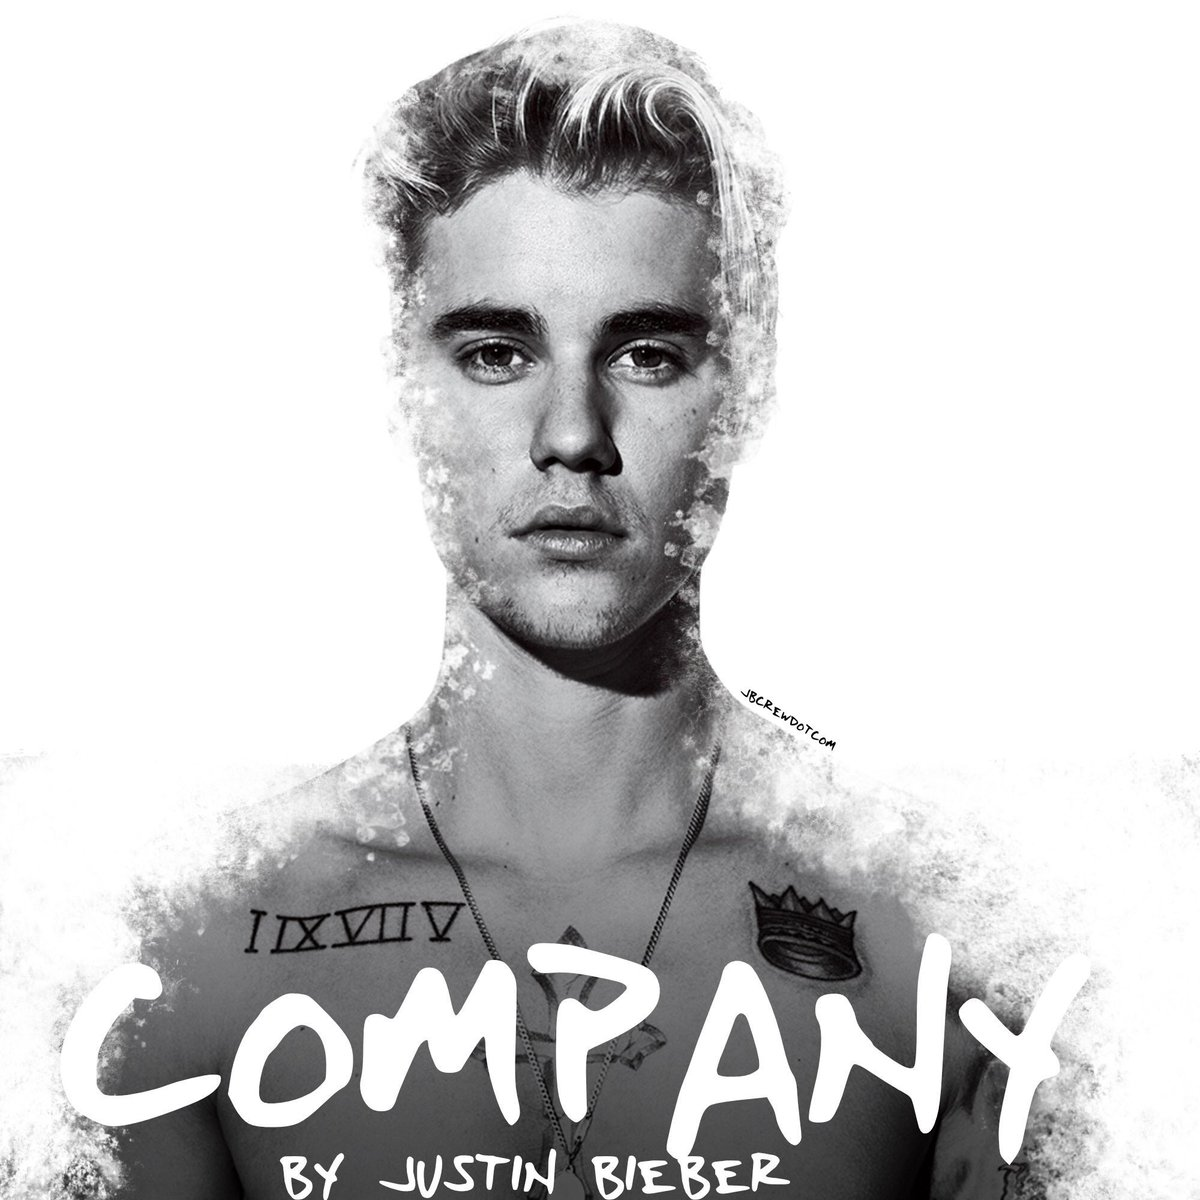 """#JacaTop20  @justinbieber """"Company"""" is crawling up the chart to No.11 after charting for 3 weeks https://t.co/ZGfoQ8aq5z"""